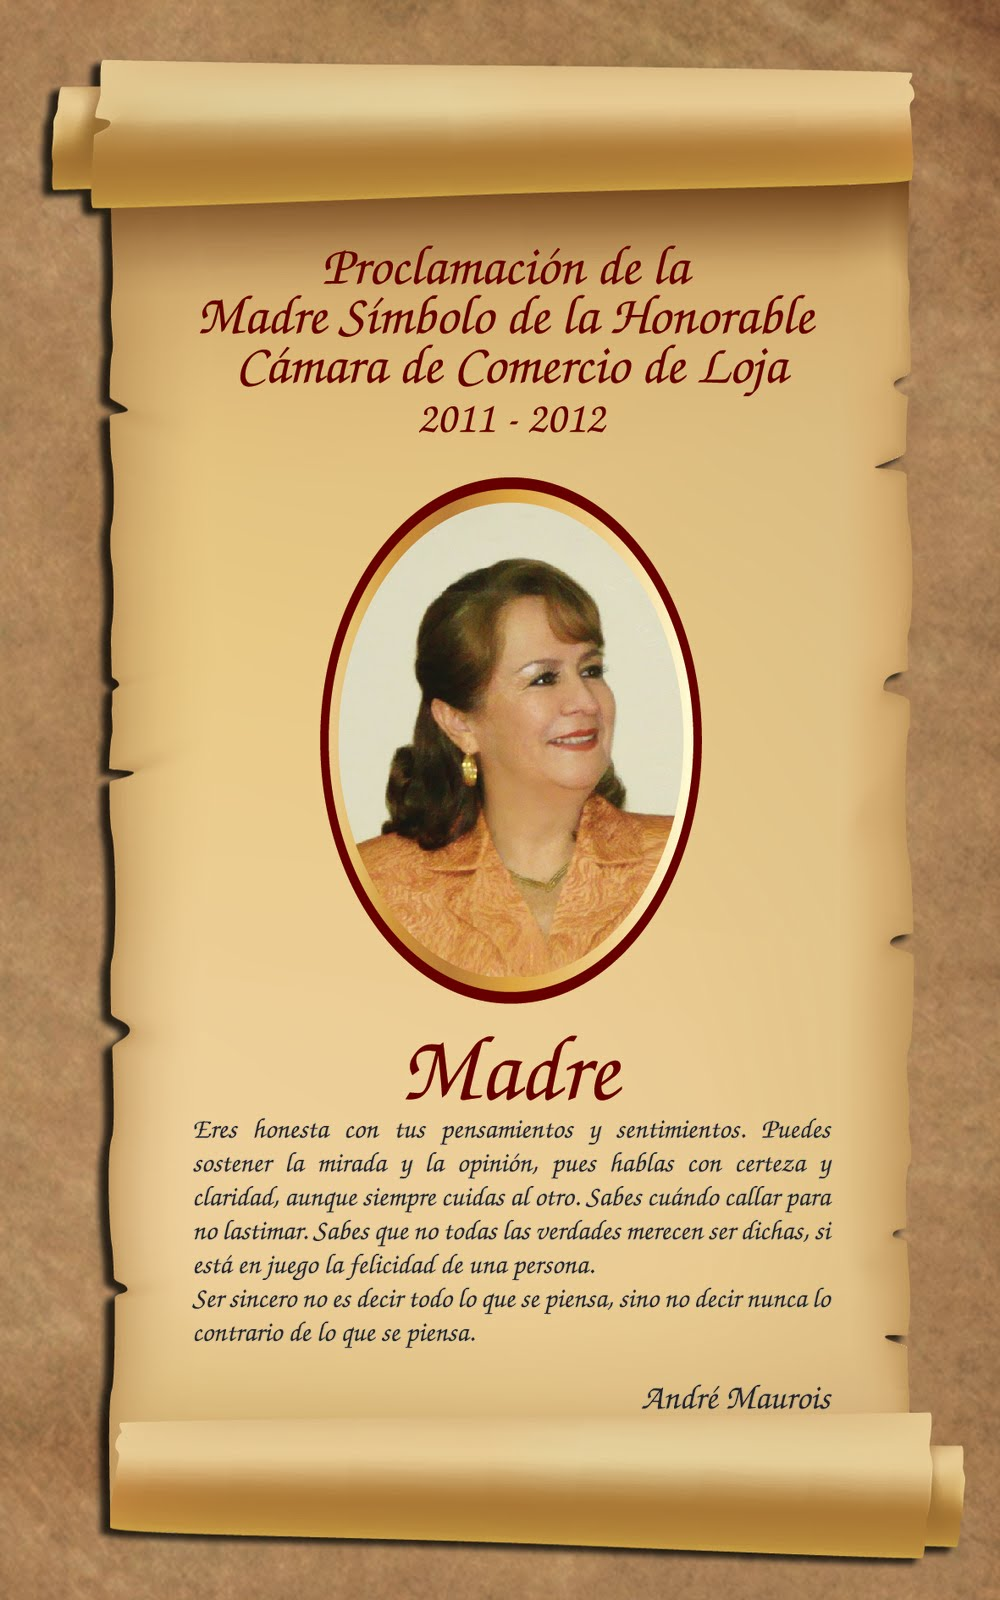 Madre Símbolo Honorable Cámara de Comercio de Loja